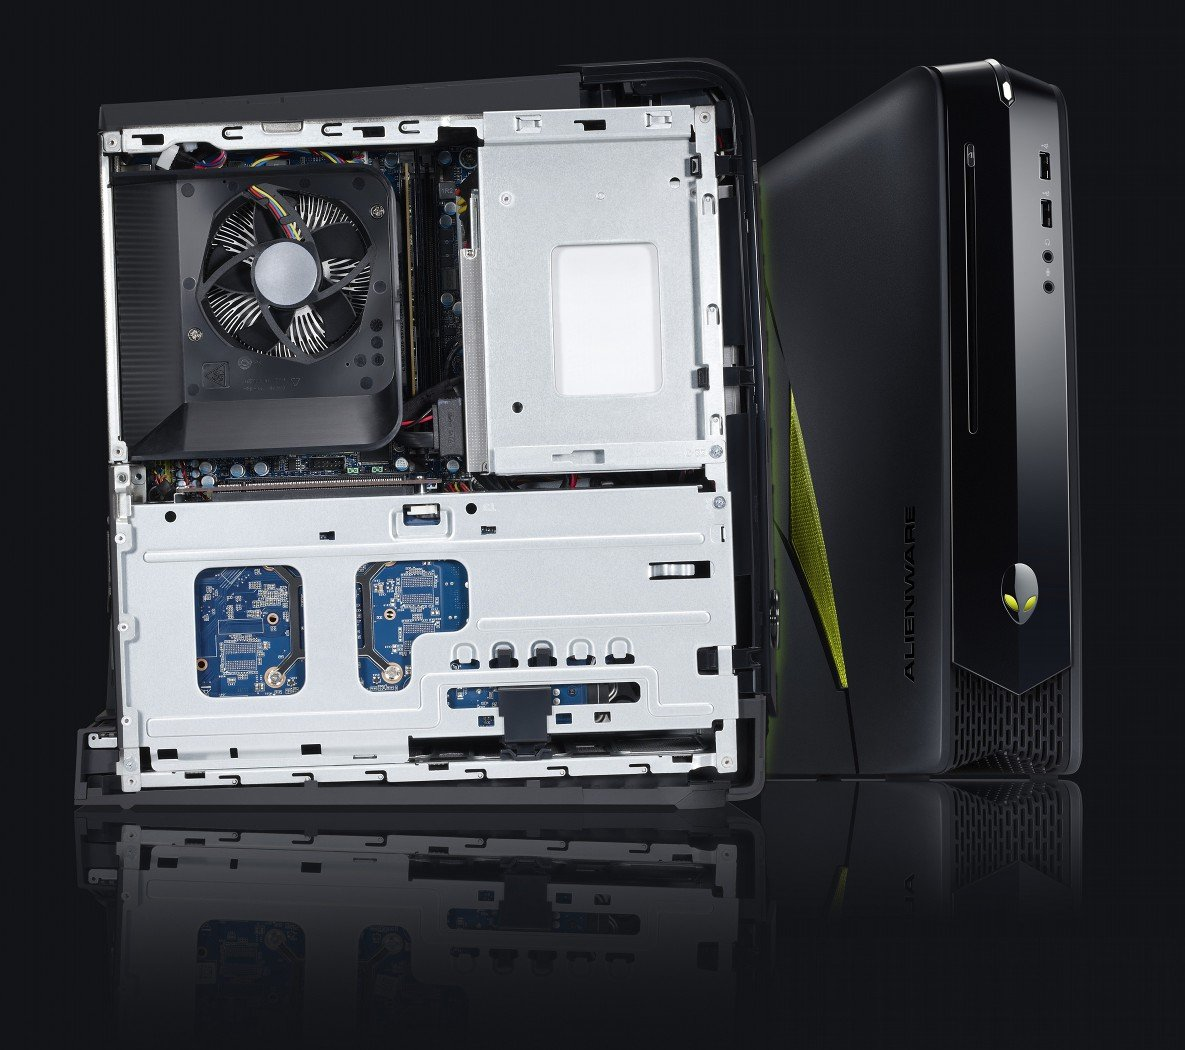 Dell coupons alienware x51